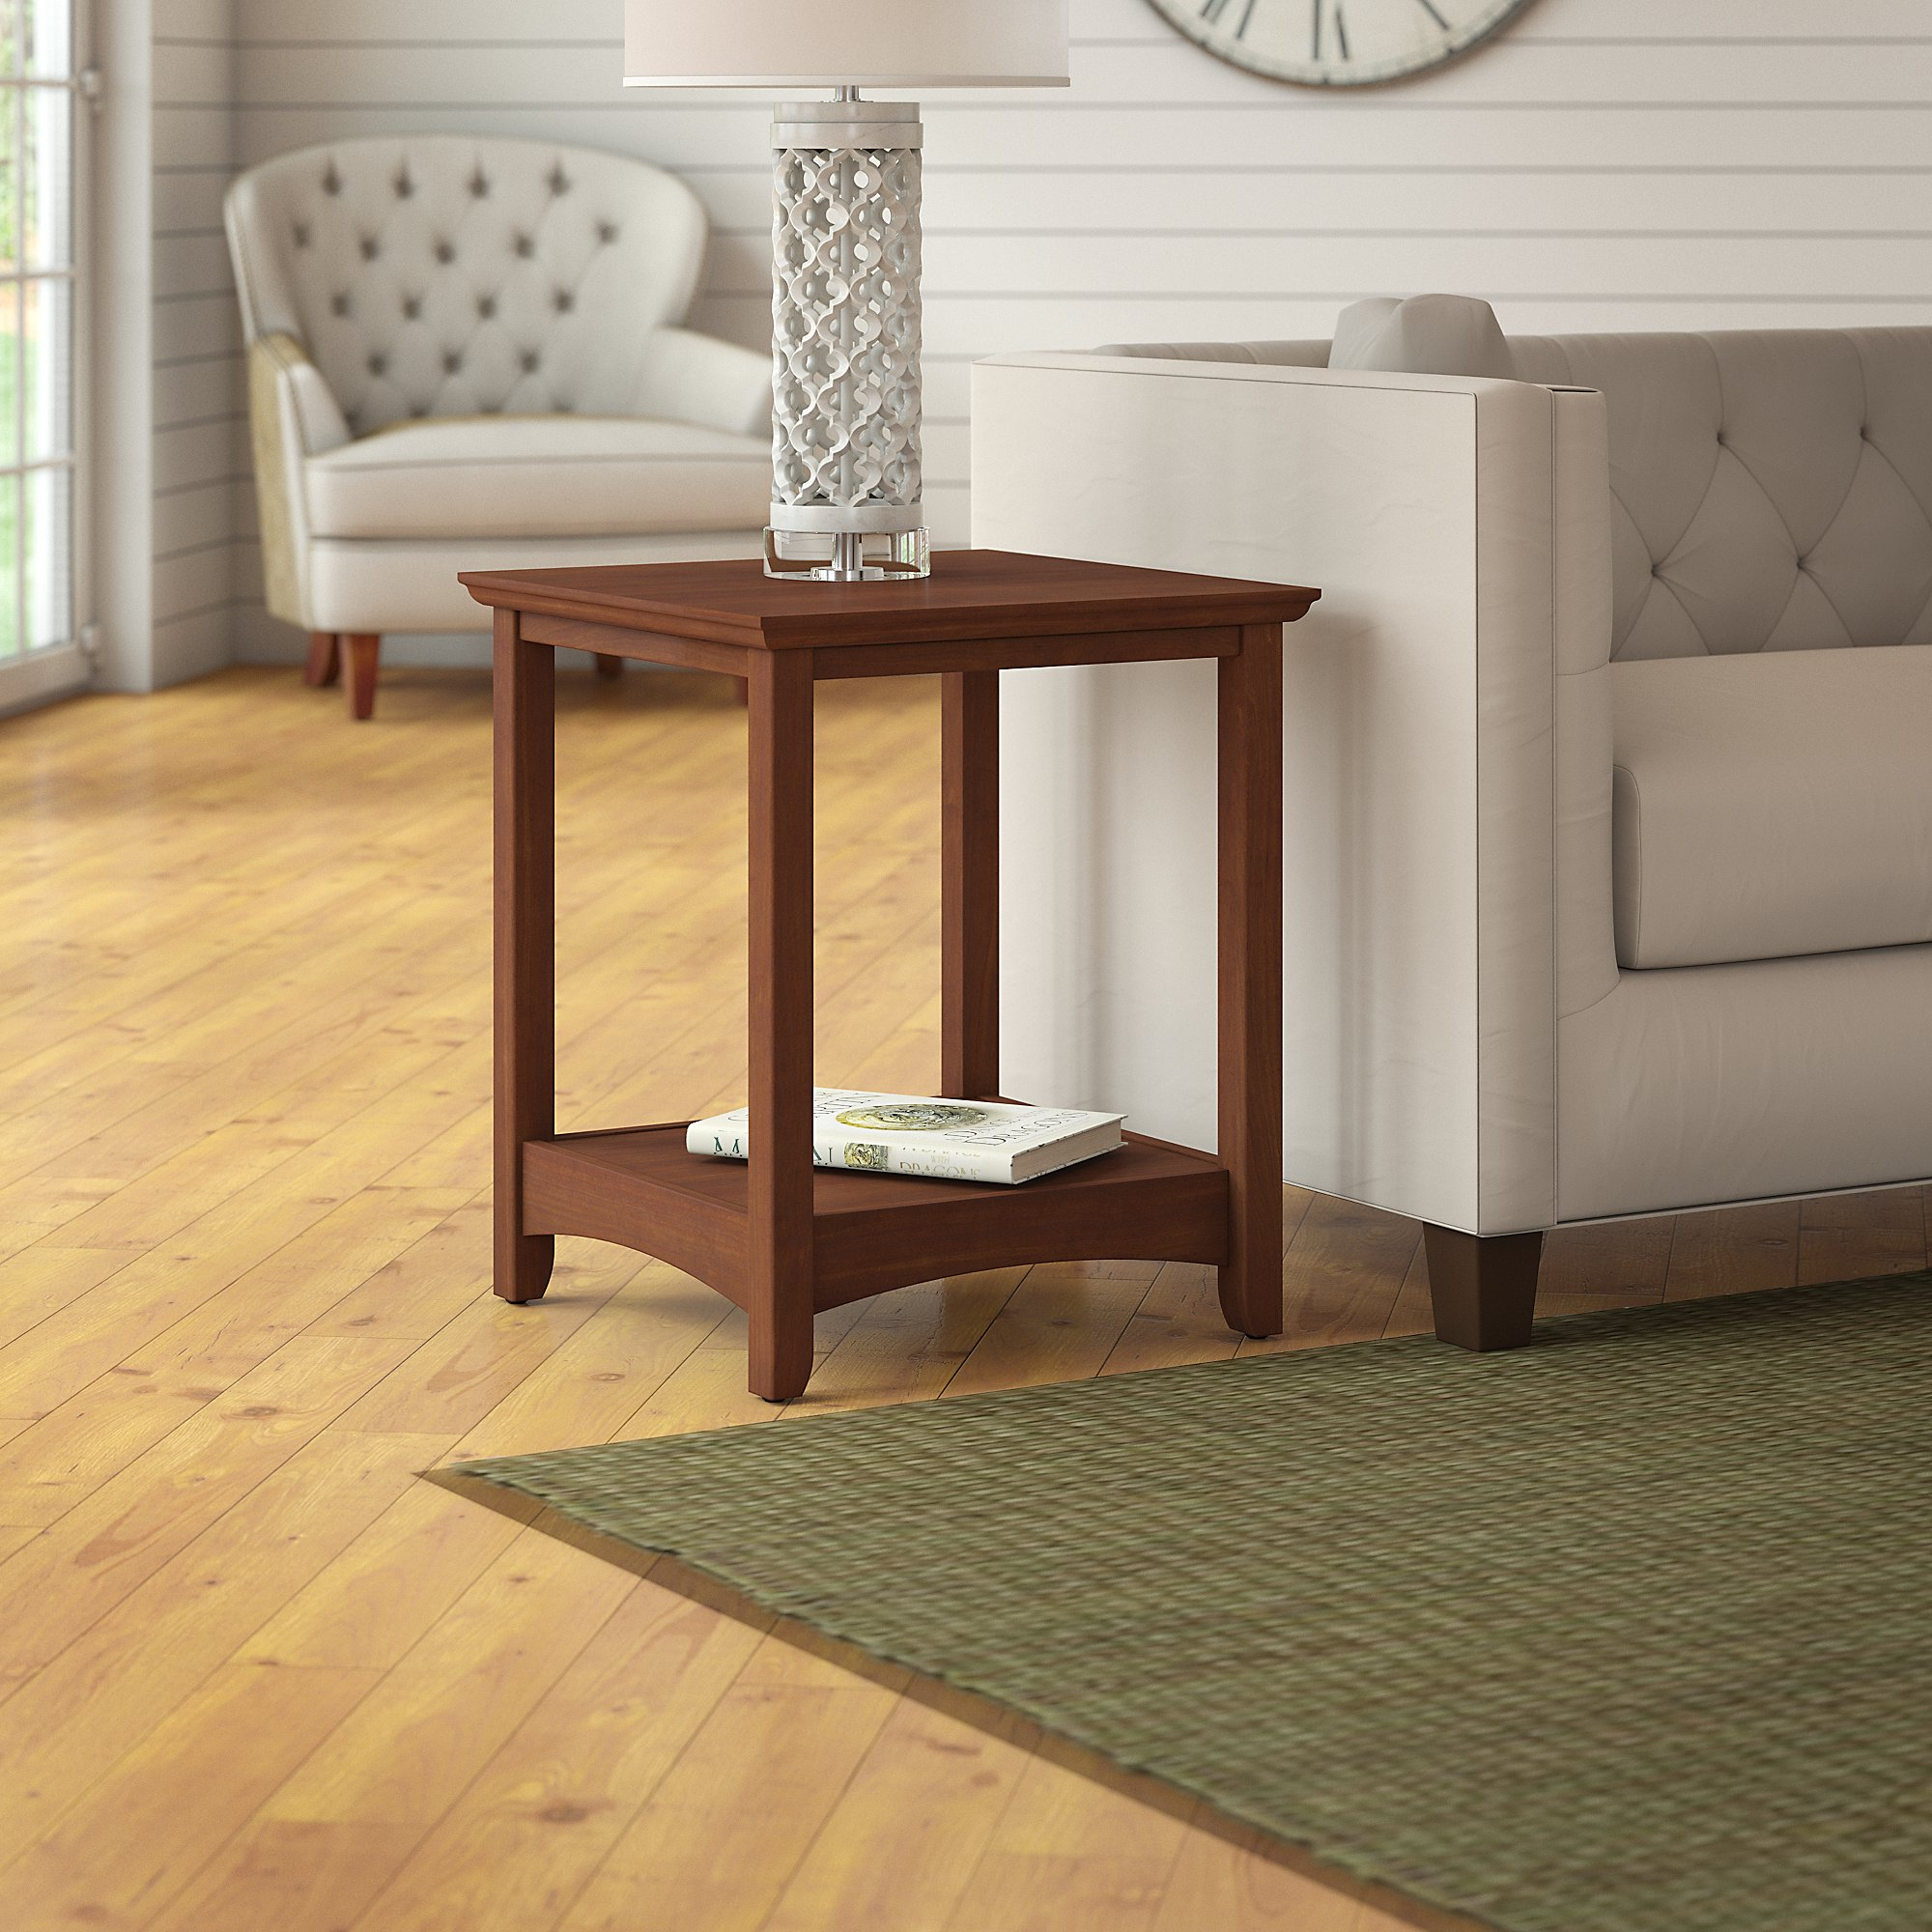 Bush Furniture Buena Vista End Tables in Madison Cherry